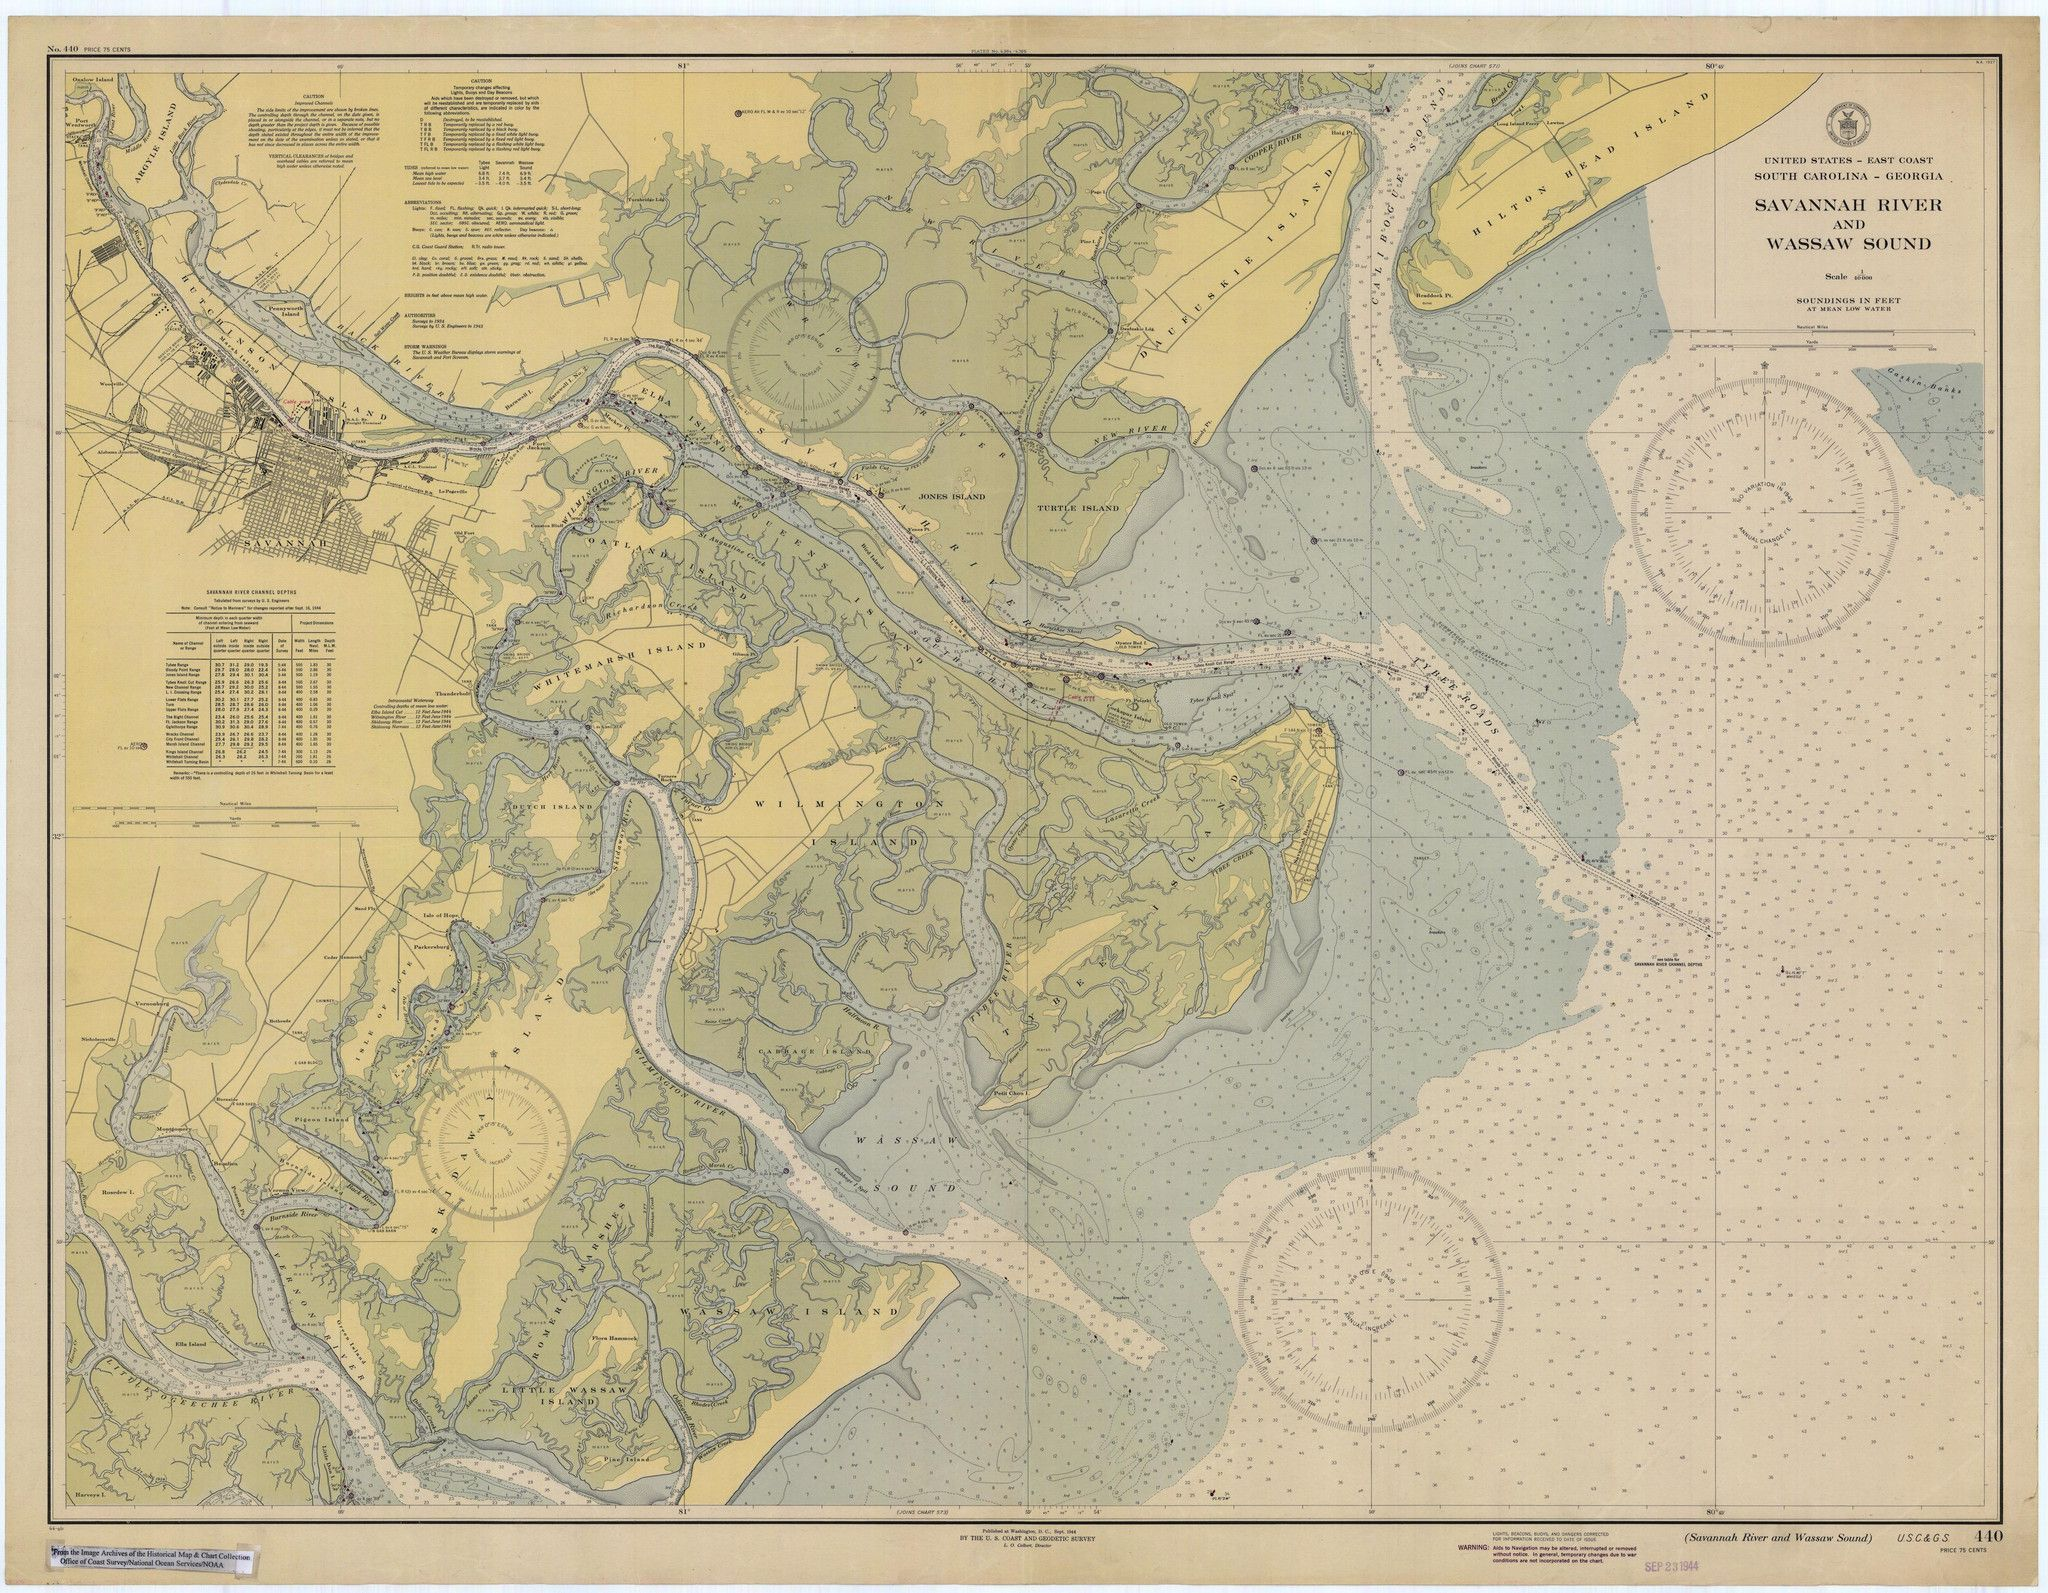 Tybee Island Savannah Map 1926 Tybee island chats Savannah and